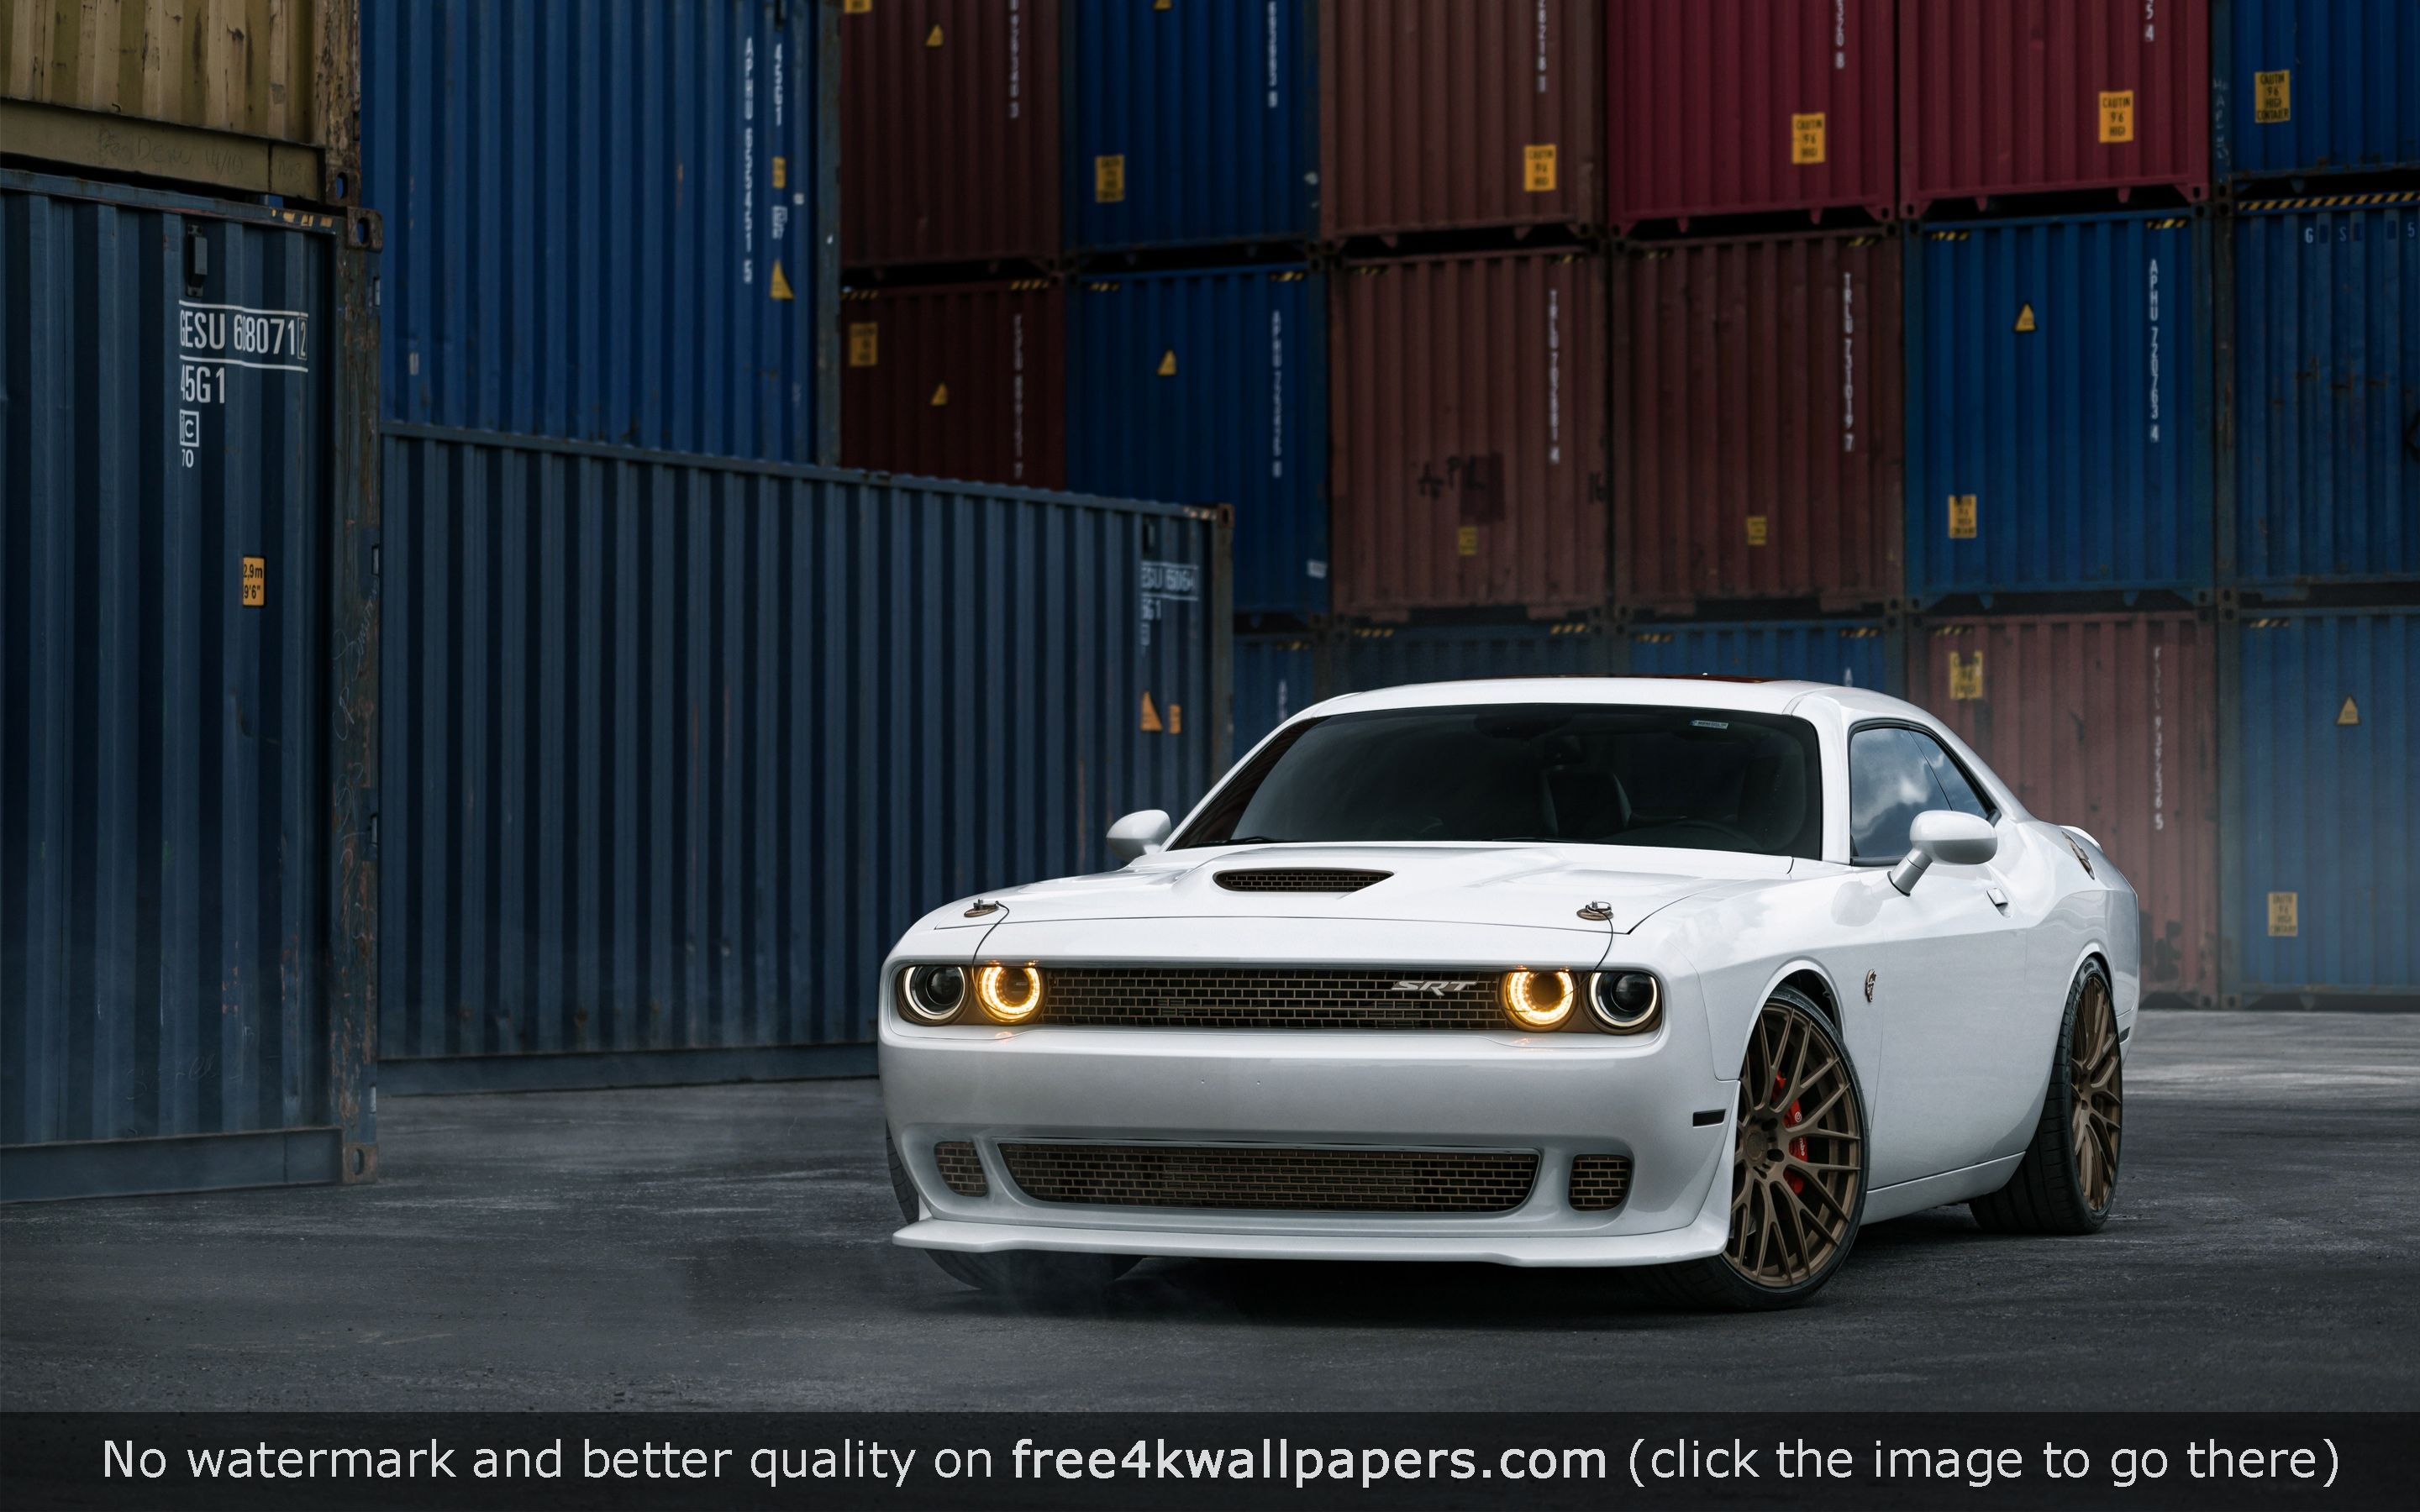 Dodge Challenger Srt Hellcat Hd Wallpaper Desktop Wallpapers